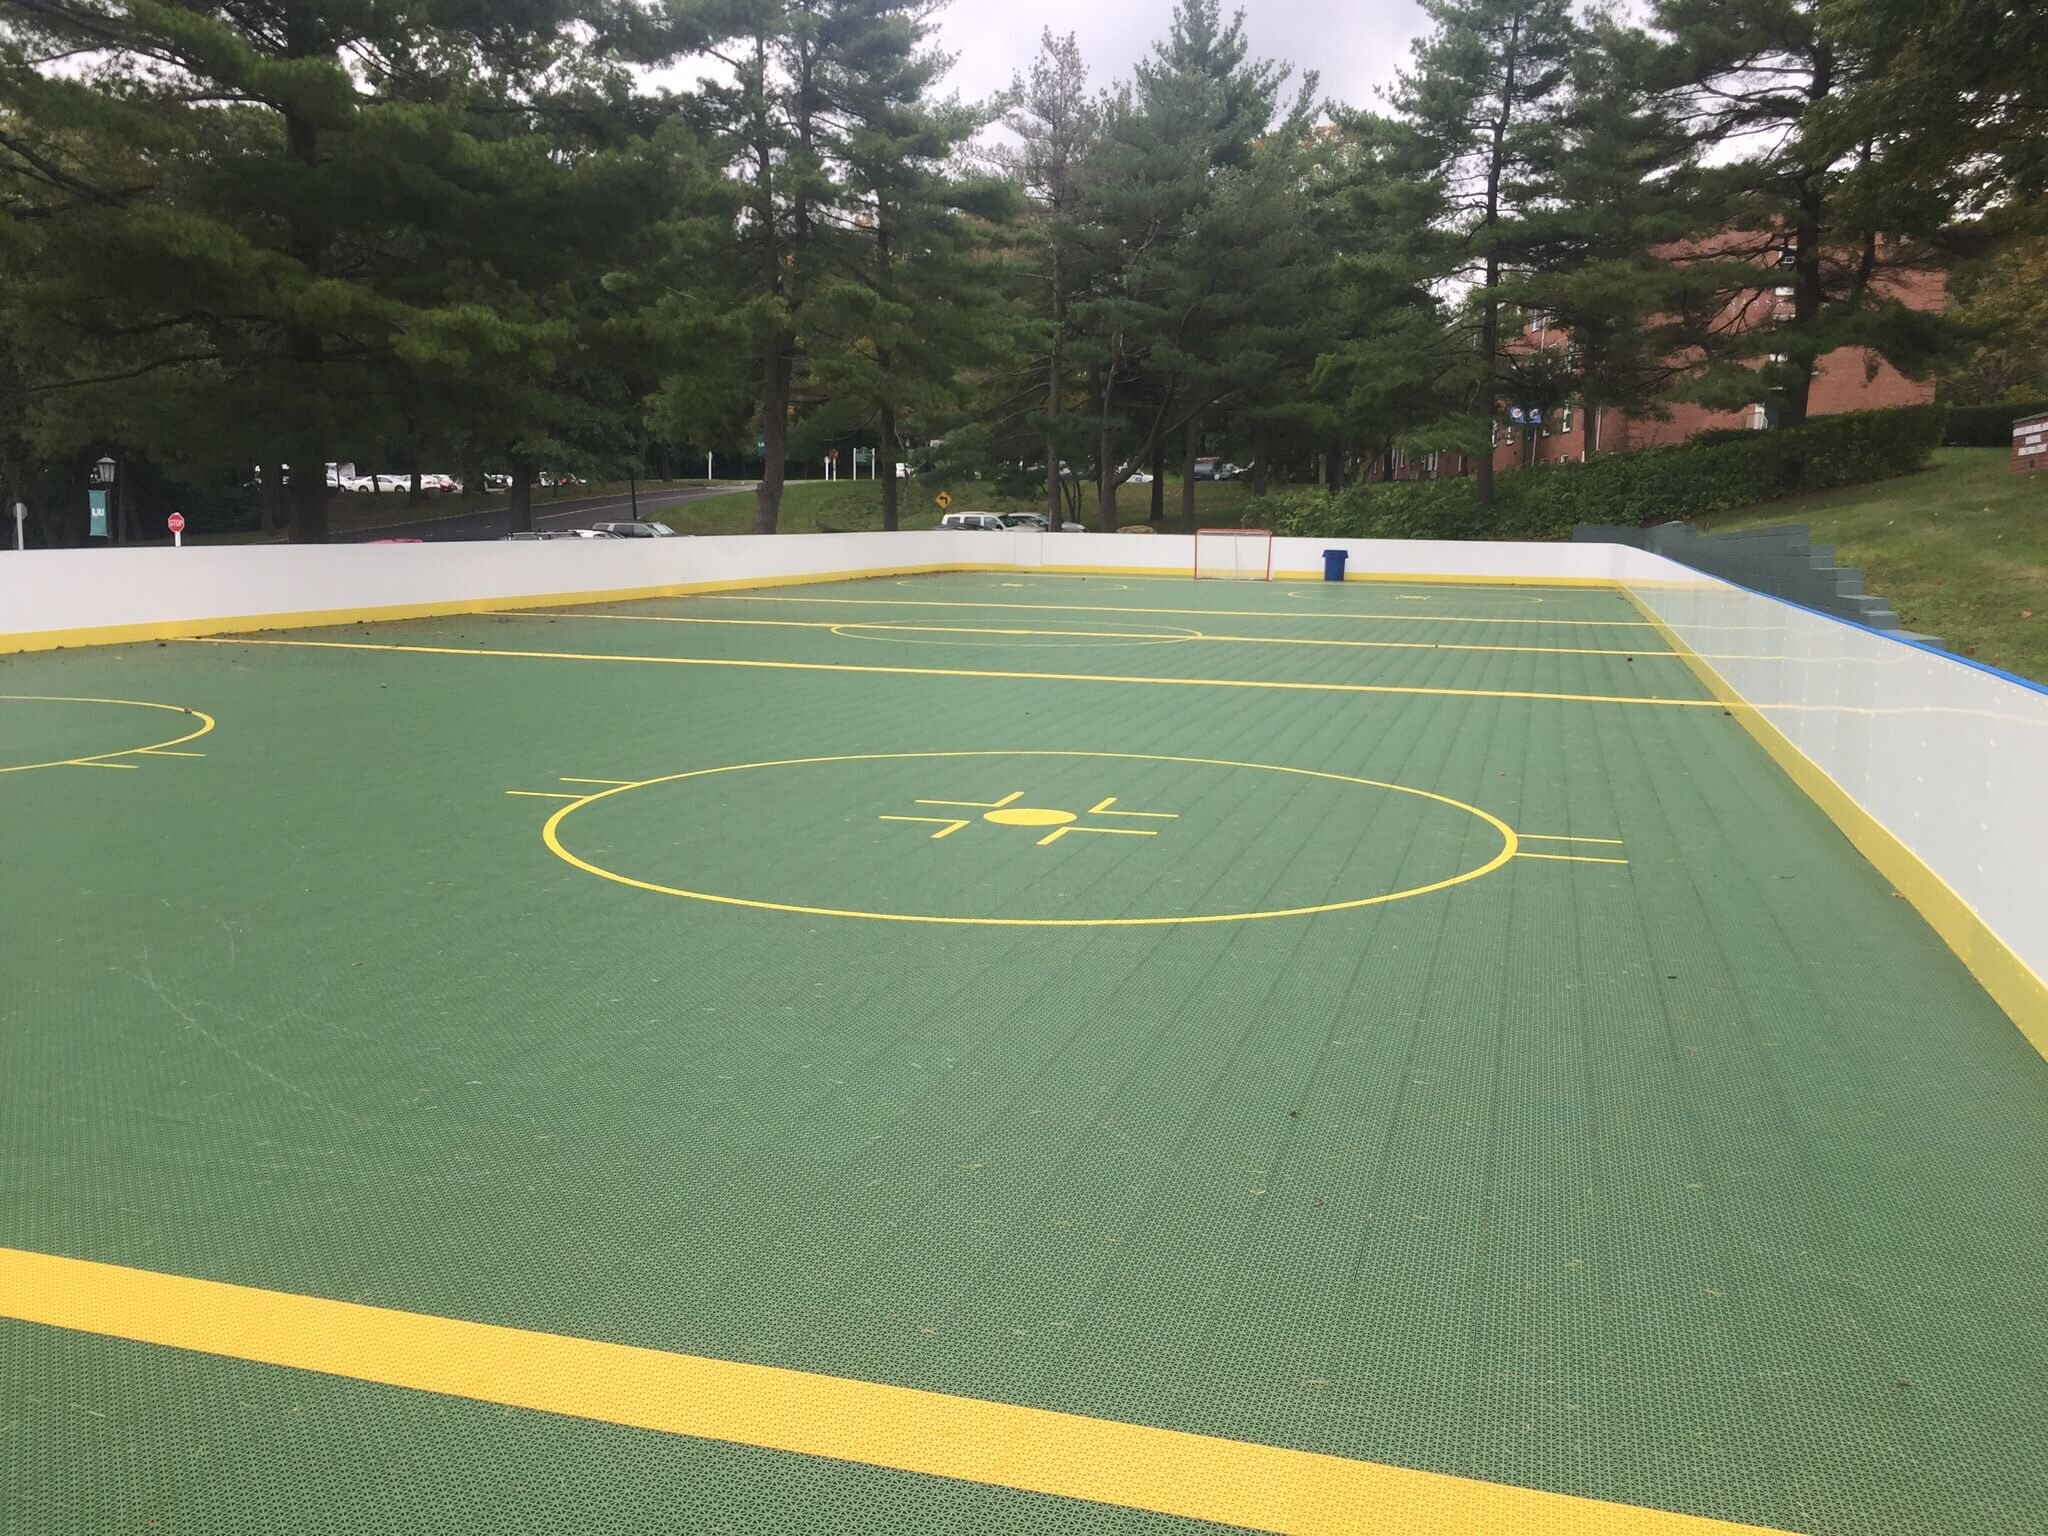 Hockey Boards on Game Court - Farmingdale, NY